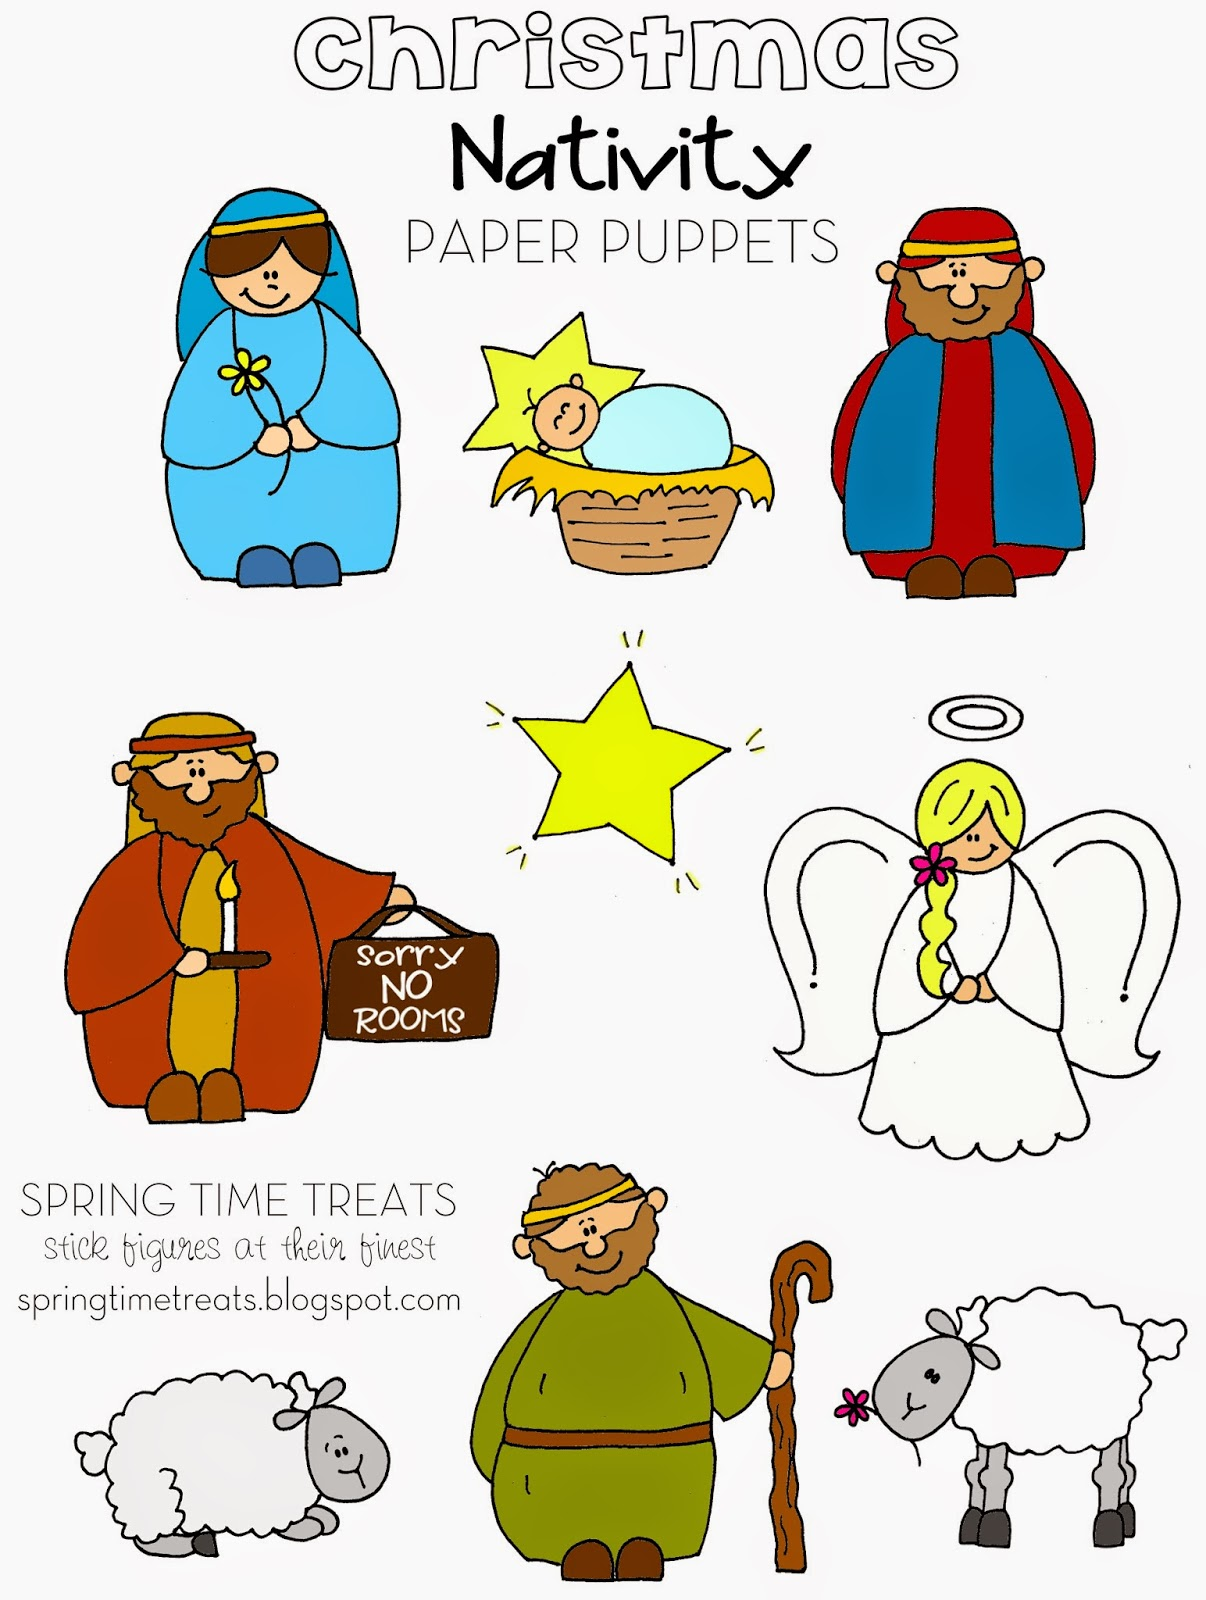 Nativity Story Ideas Or Crafts